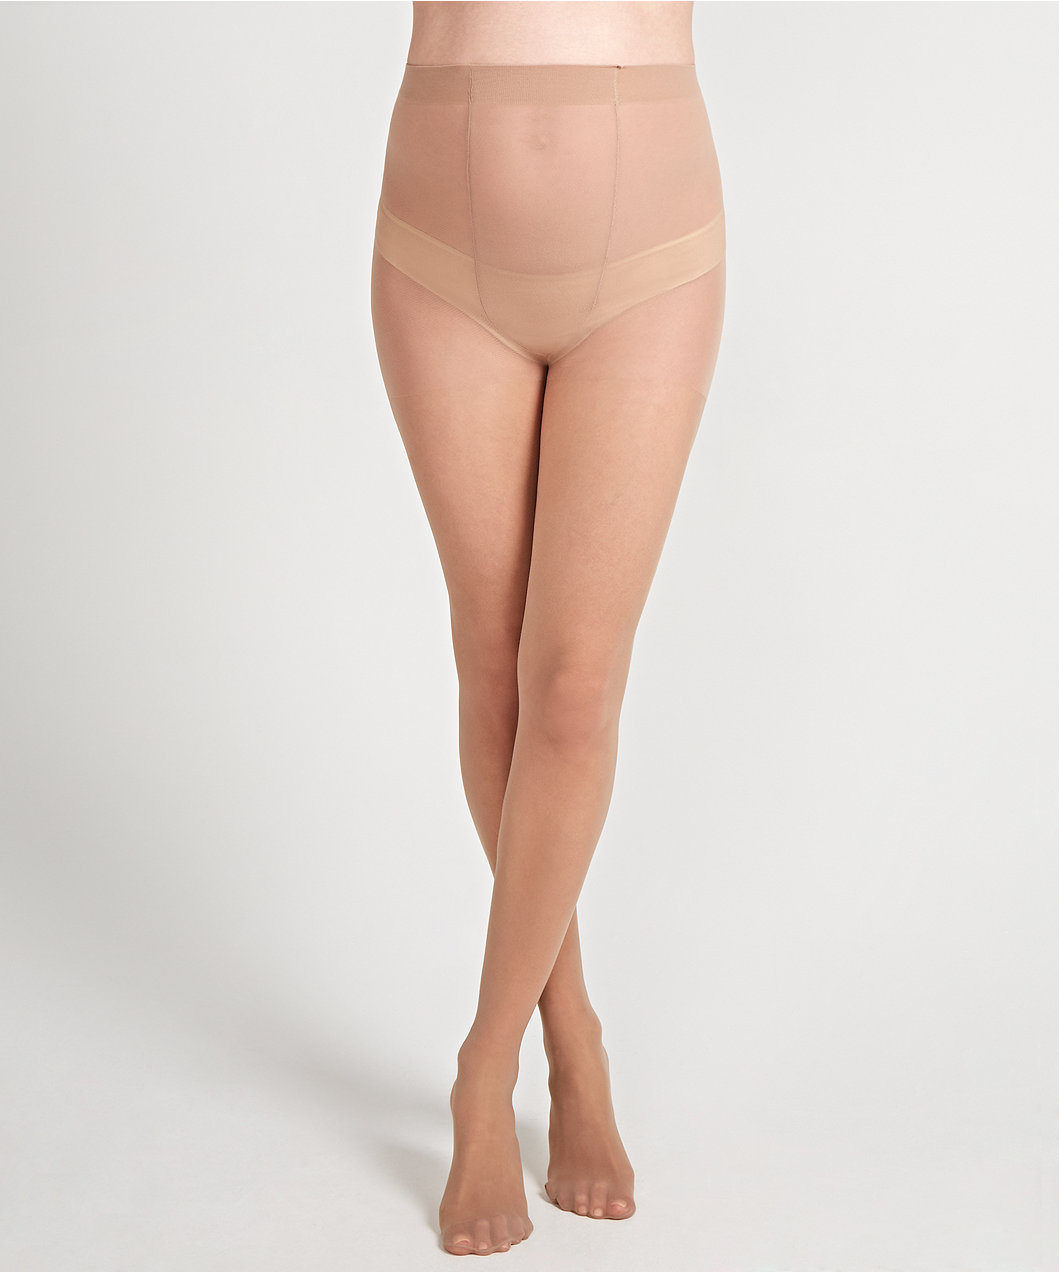 ddc17b0c630 Nude Maternity Tights 20 Denier - 2 Pack